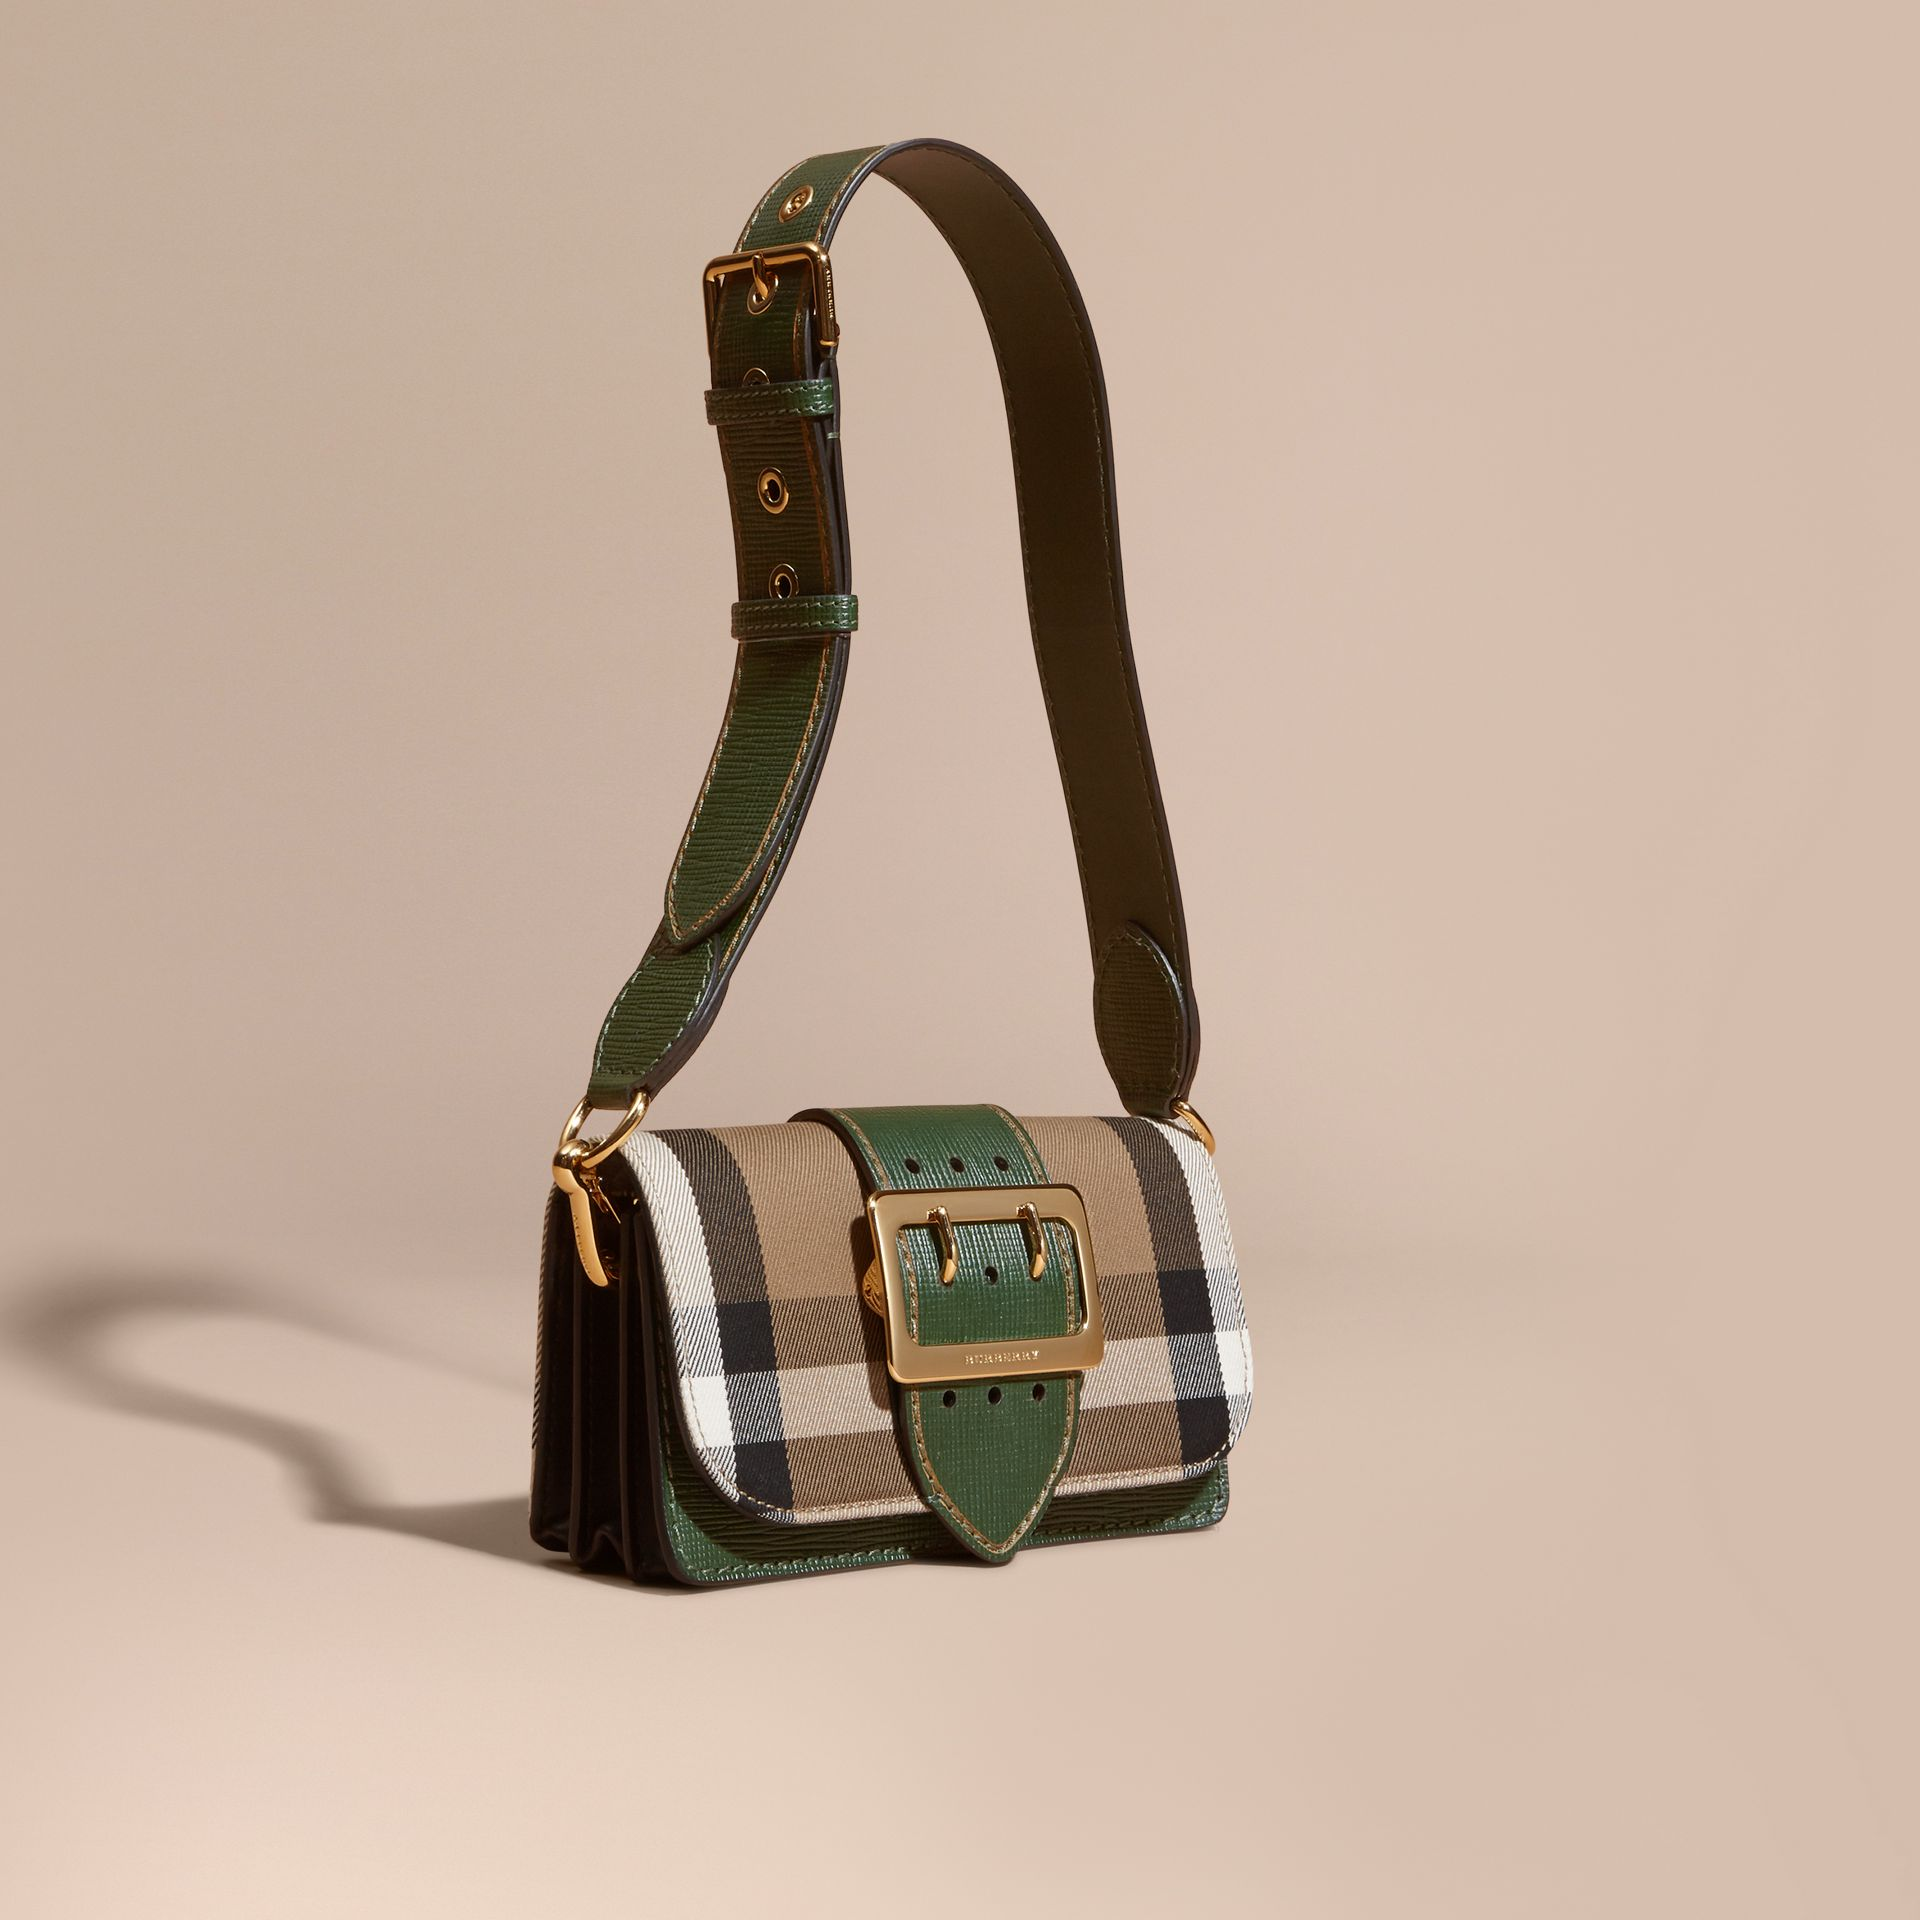 The Small Buckle Bag in House Check and Leather in Kelly Green/kelly Green - Women | Burberry Canada - gallery image 8